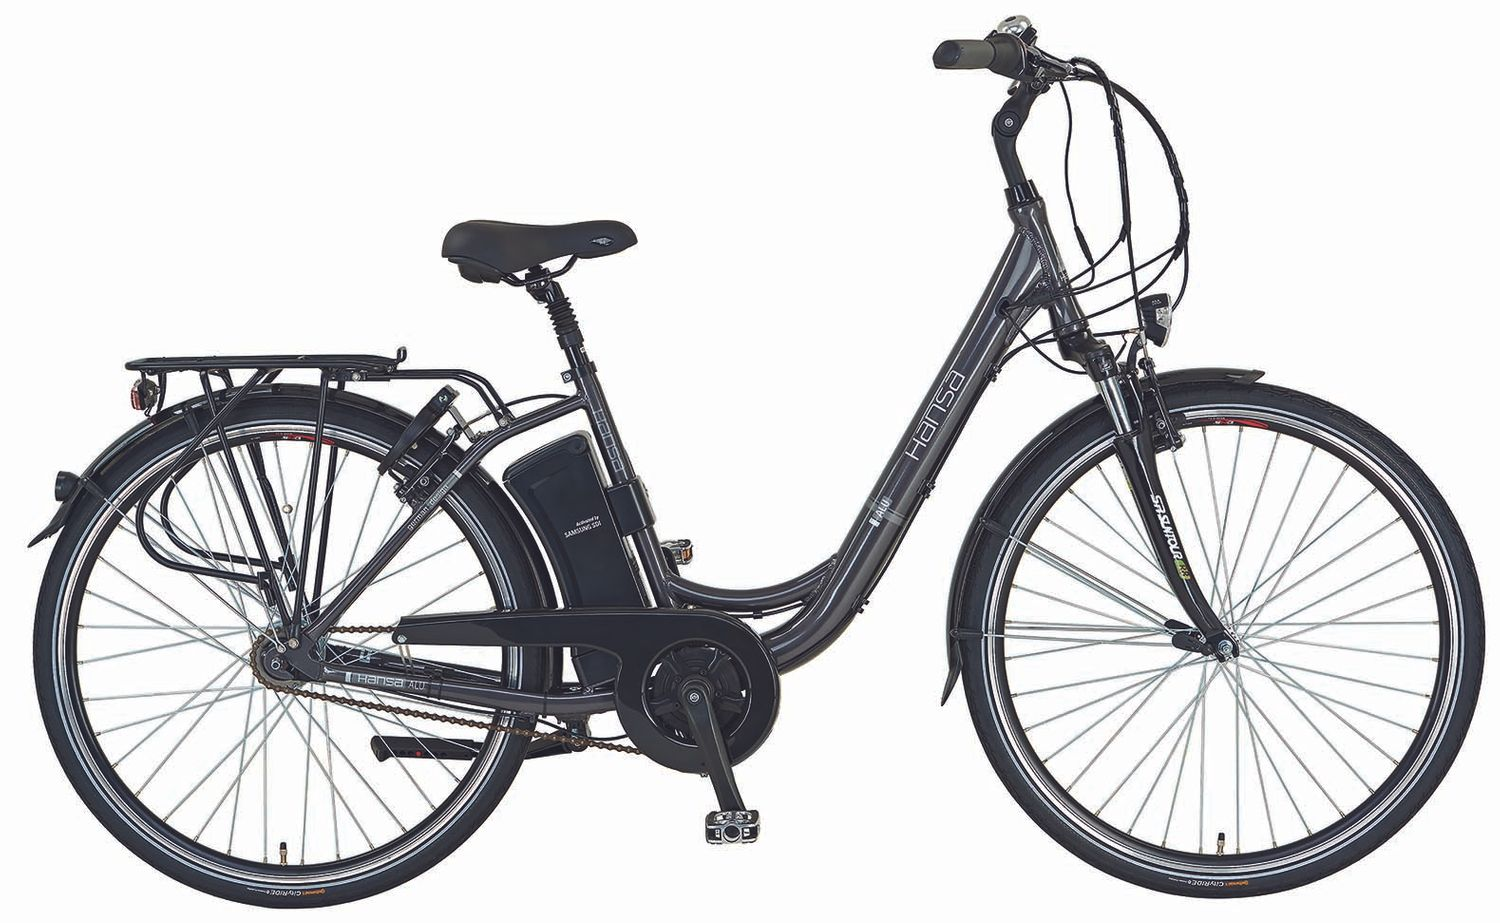 prophete e bike caravan 28 alu city elektro fahrrad 7 gang mittelmotor 36 volt ebay. Black Bedroom Furniture Sets. Home Design Ideas